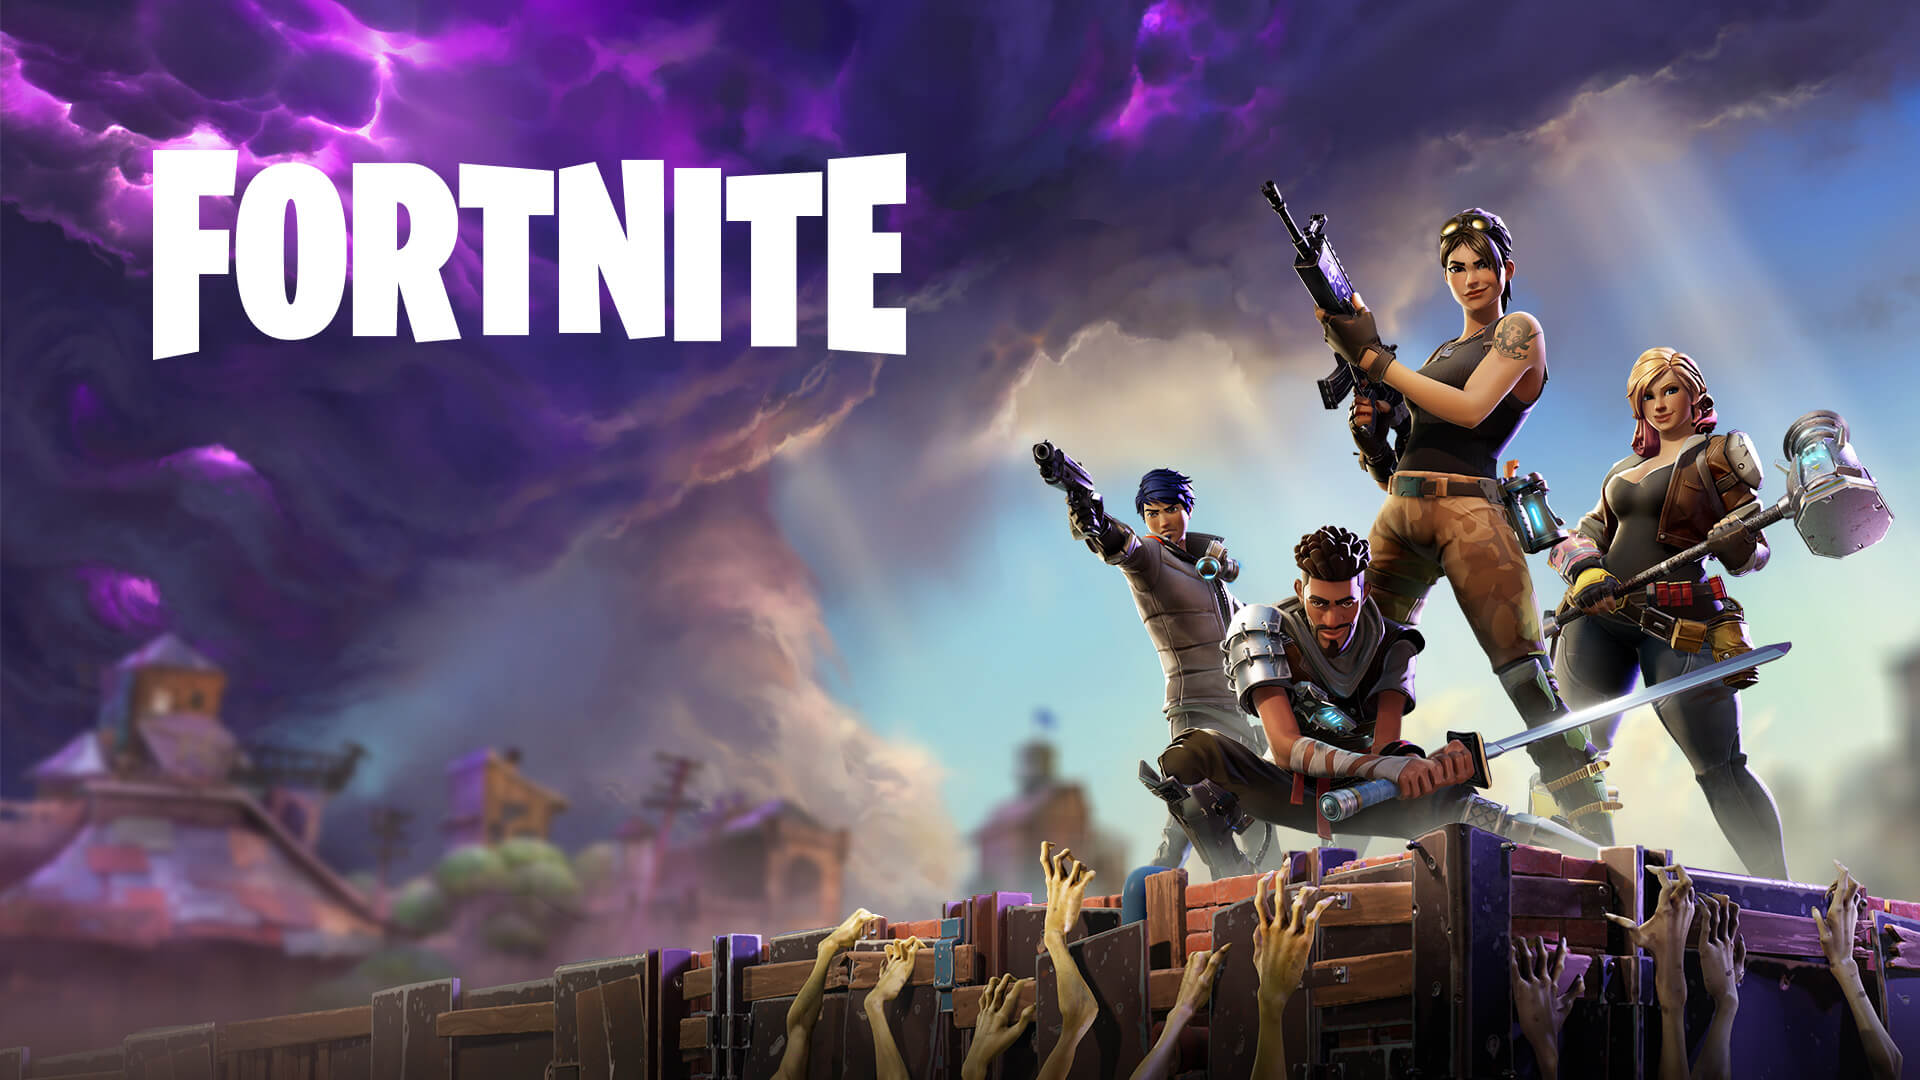 A Review of Epic Games' Fortnite